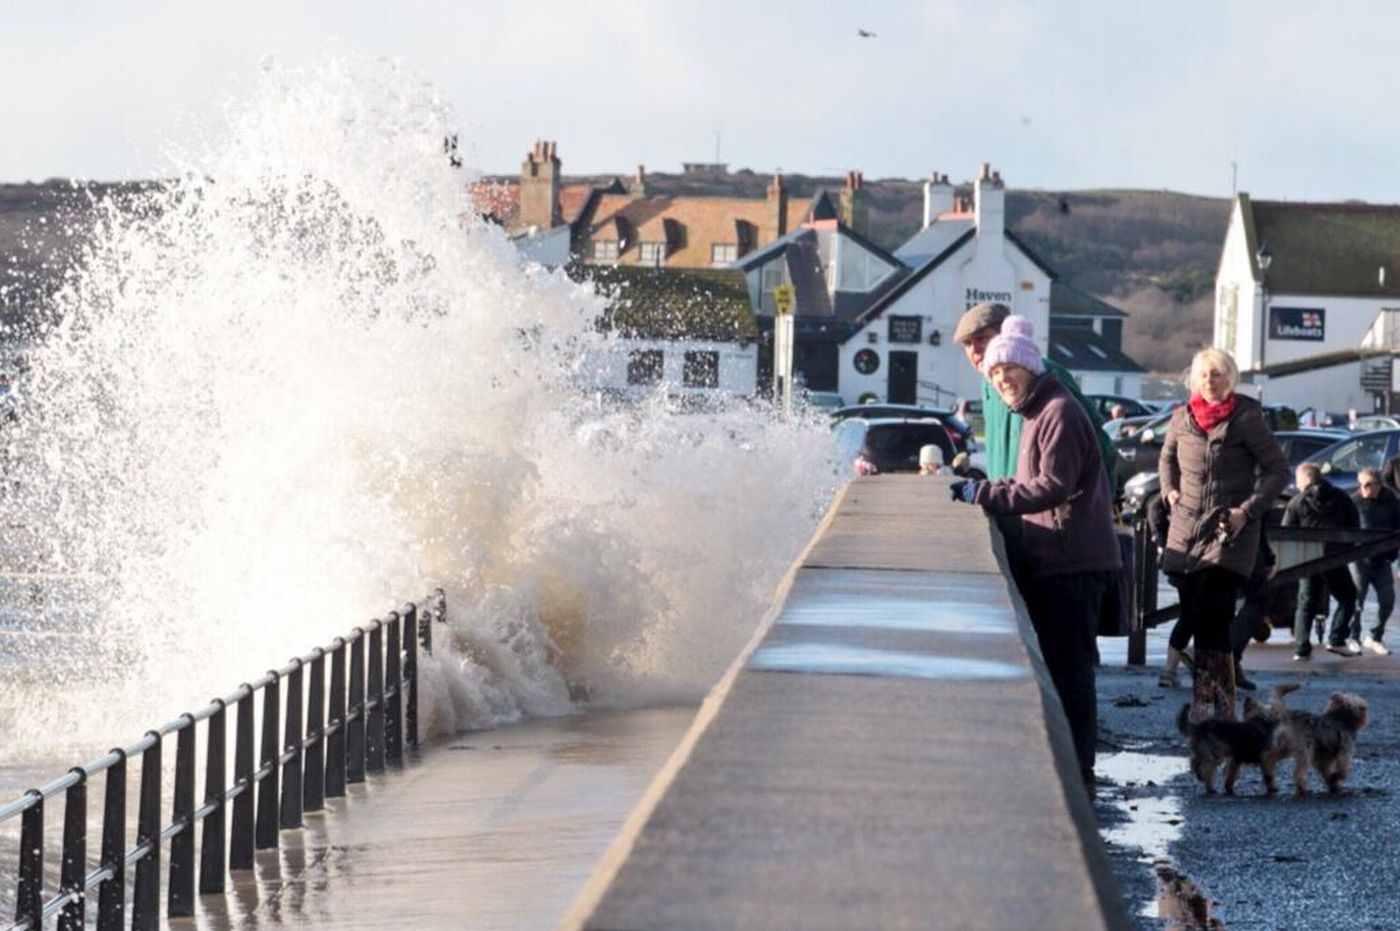 Dorset braced for more damage as storms forecast this week